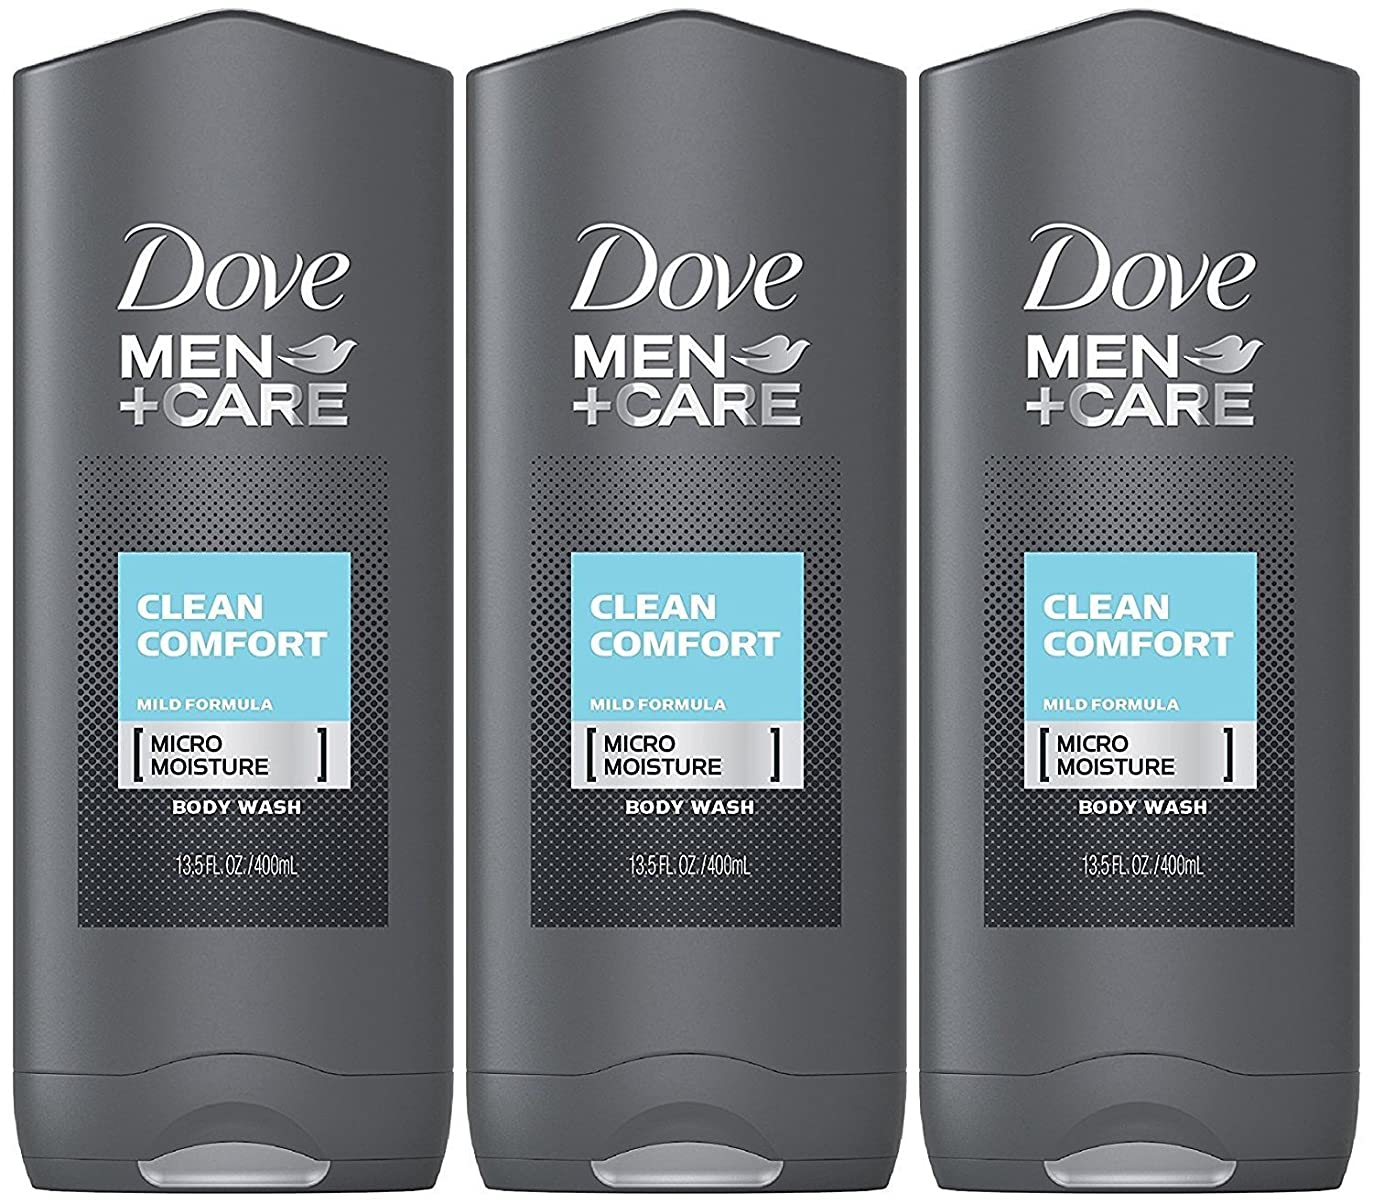 破壊するメールスラックDove Men Plus Care Body and Face Wash Clean Comfort , 13.5 Oz by Dove